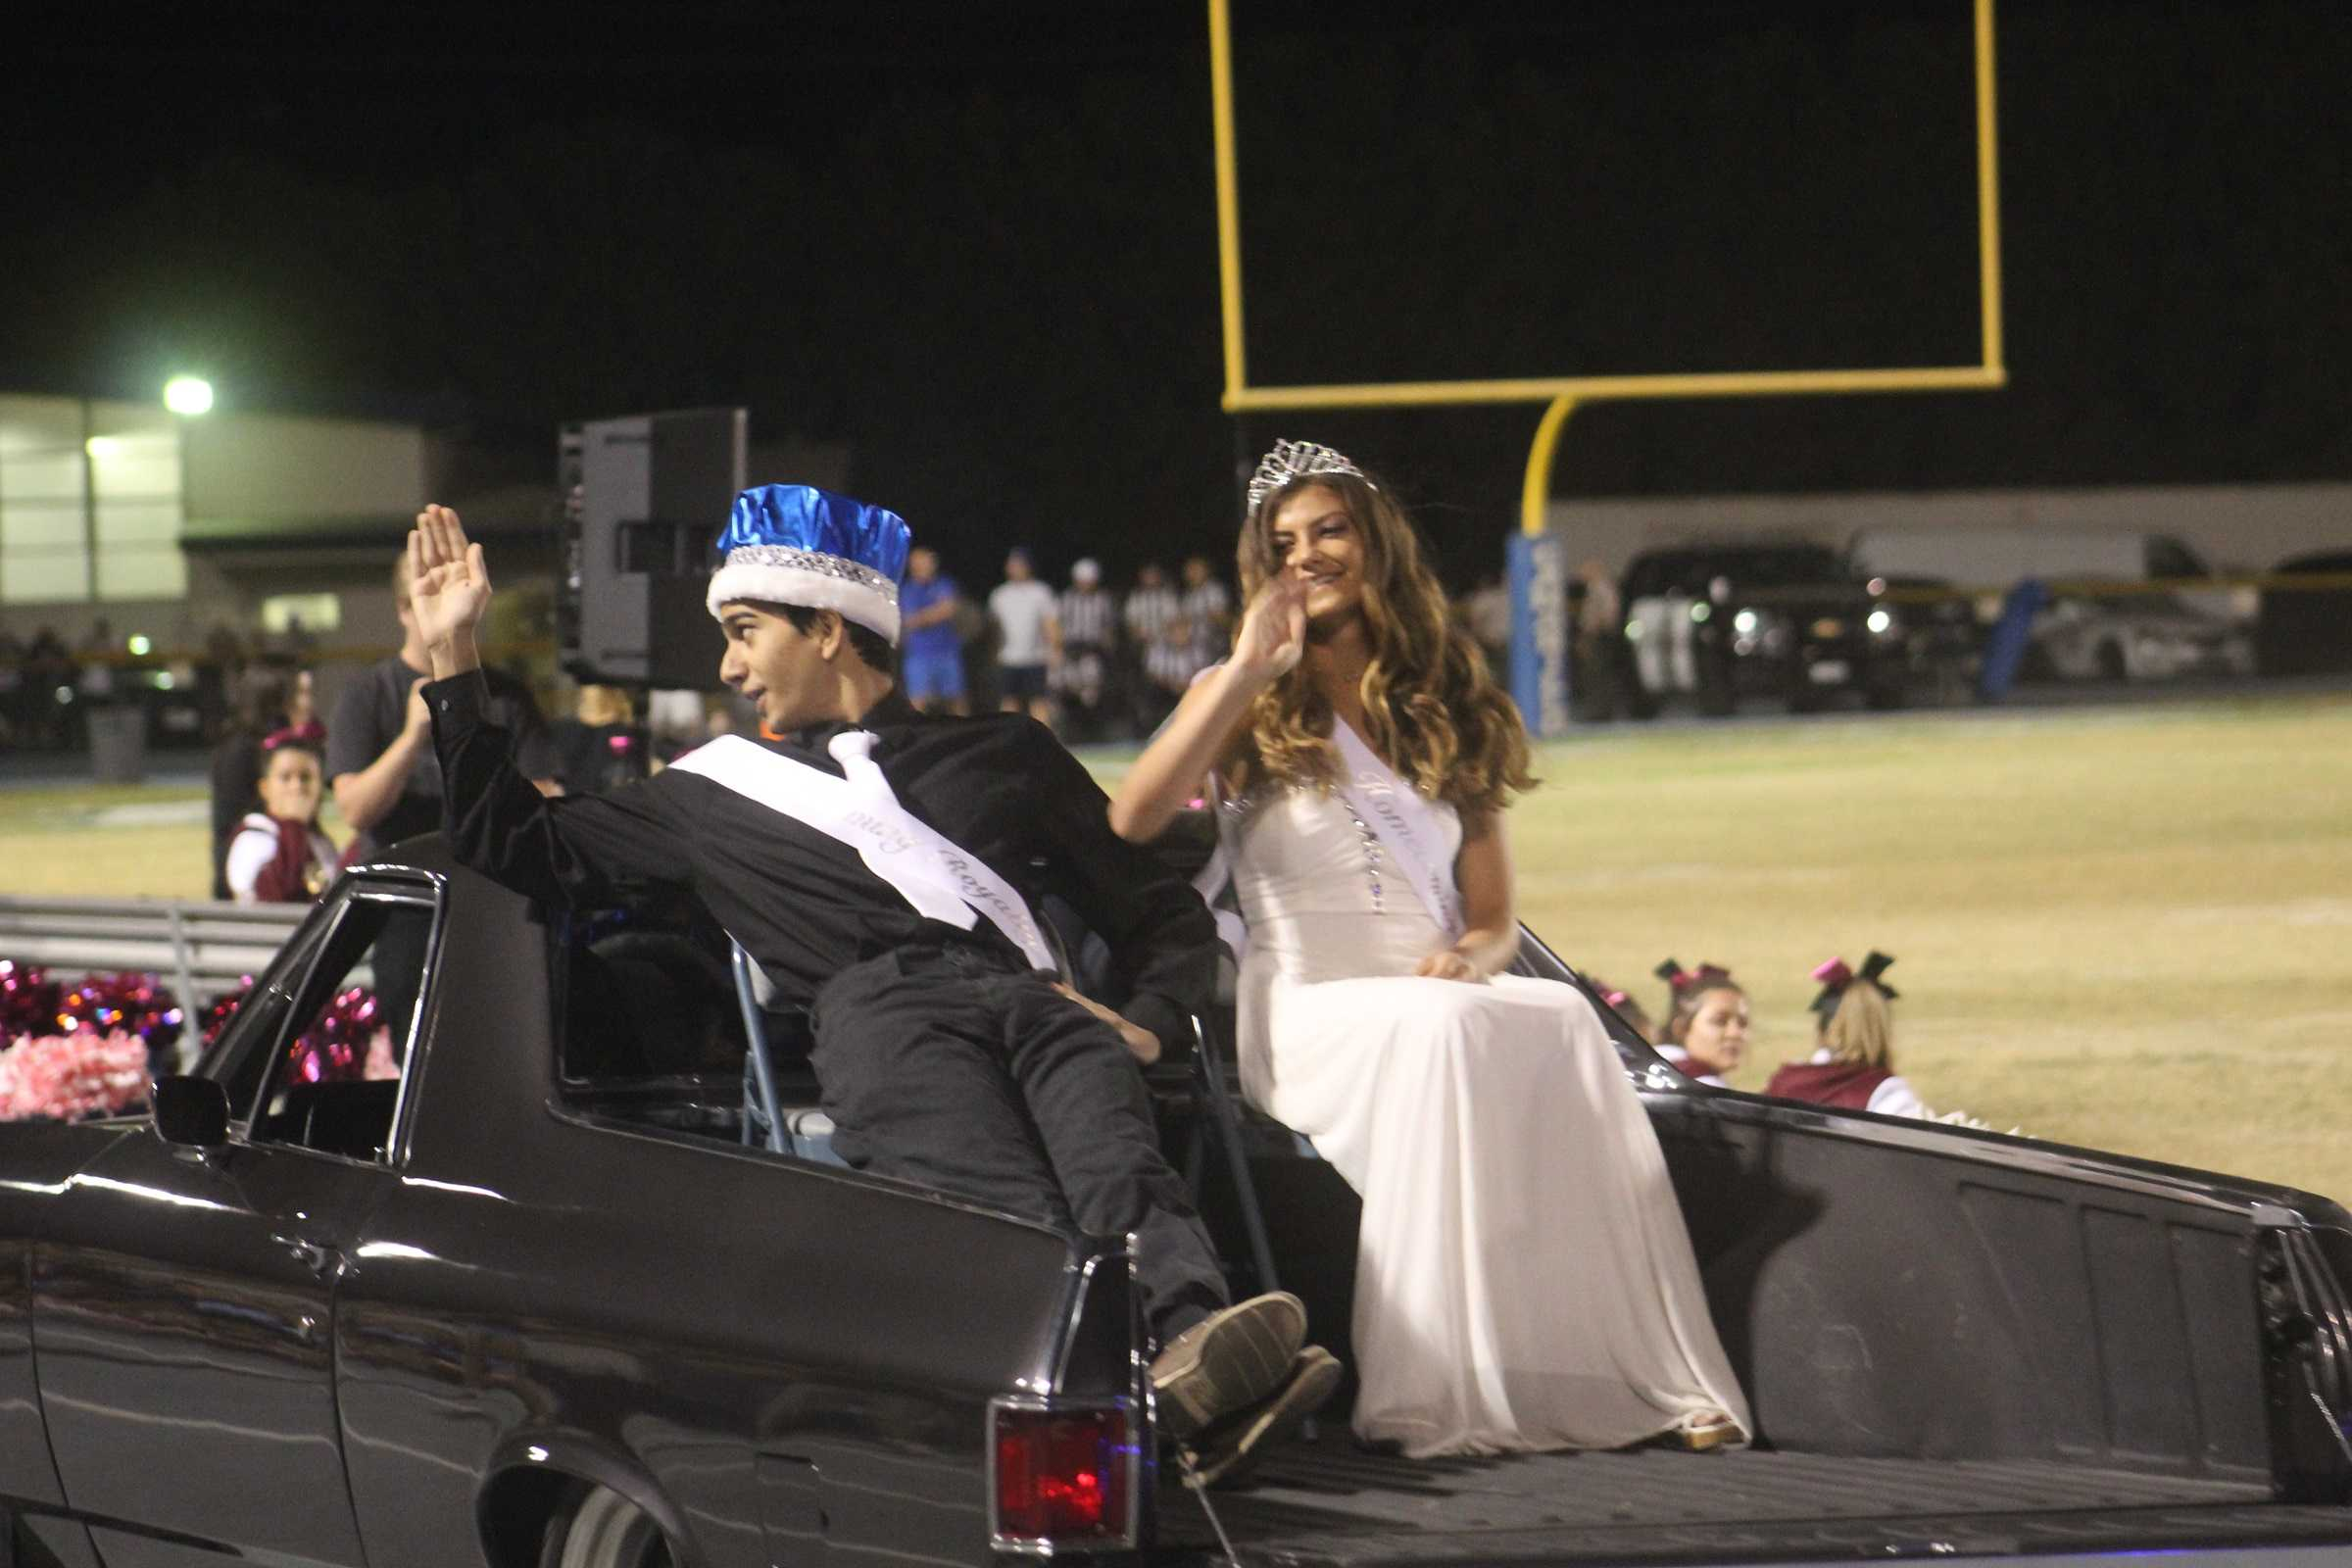 Ramtein Foghi and Sophia Cortina, junior homecoming royalty, waving to the crowd as they drive down the Cam High track during the Homecoming Game Halftime Show.